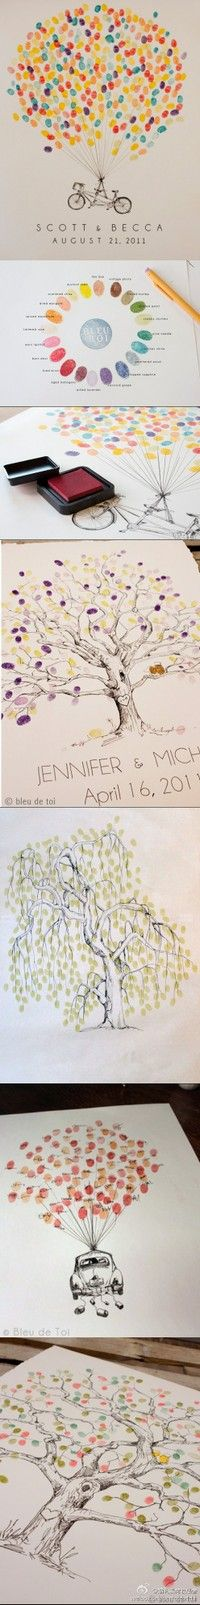 Wedding guests use their fingerprint to make a balloon or leaves on a tree.  Very cute idea!